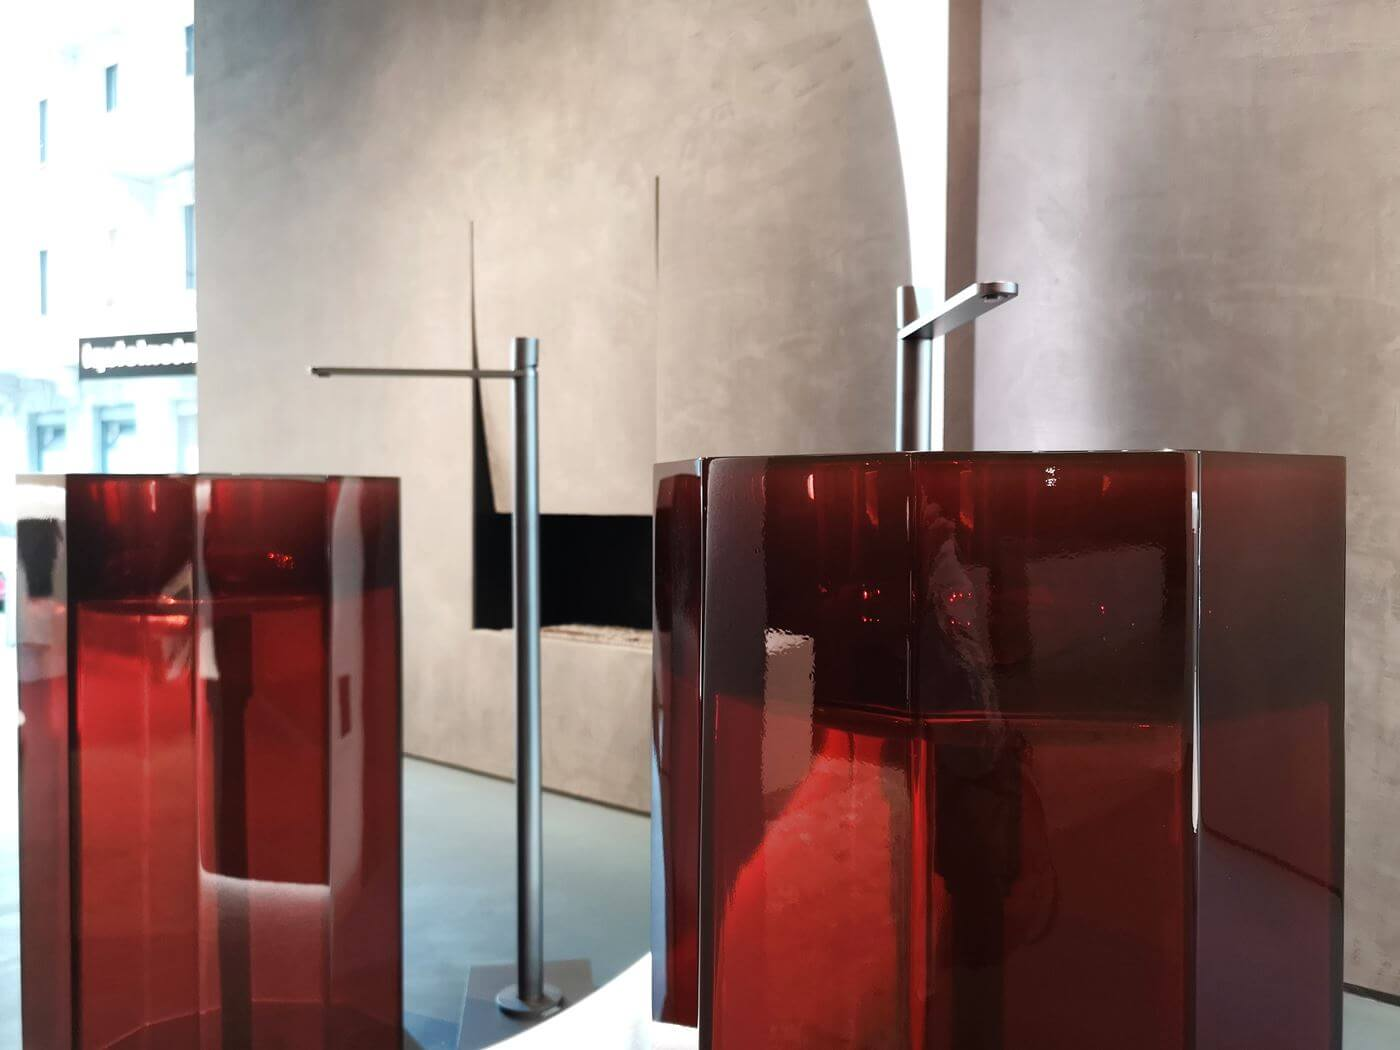 lavabo in resina trasparente colorata Cristalmood antoniolupi showroom milano